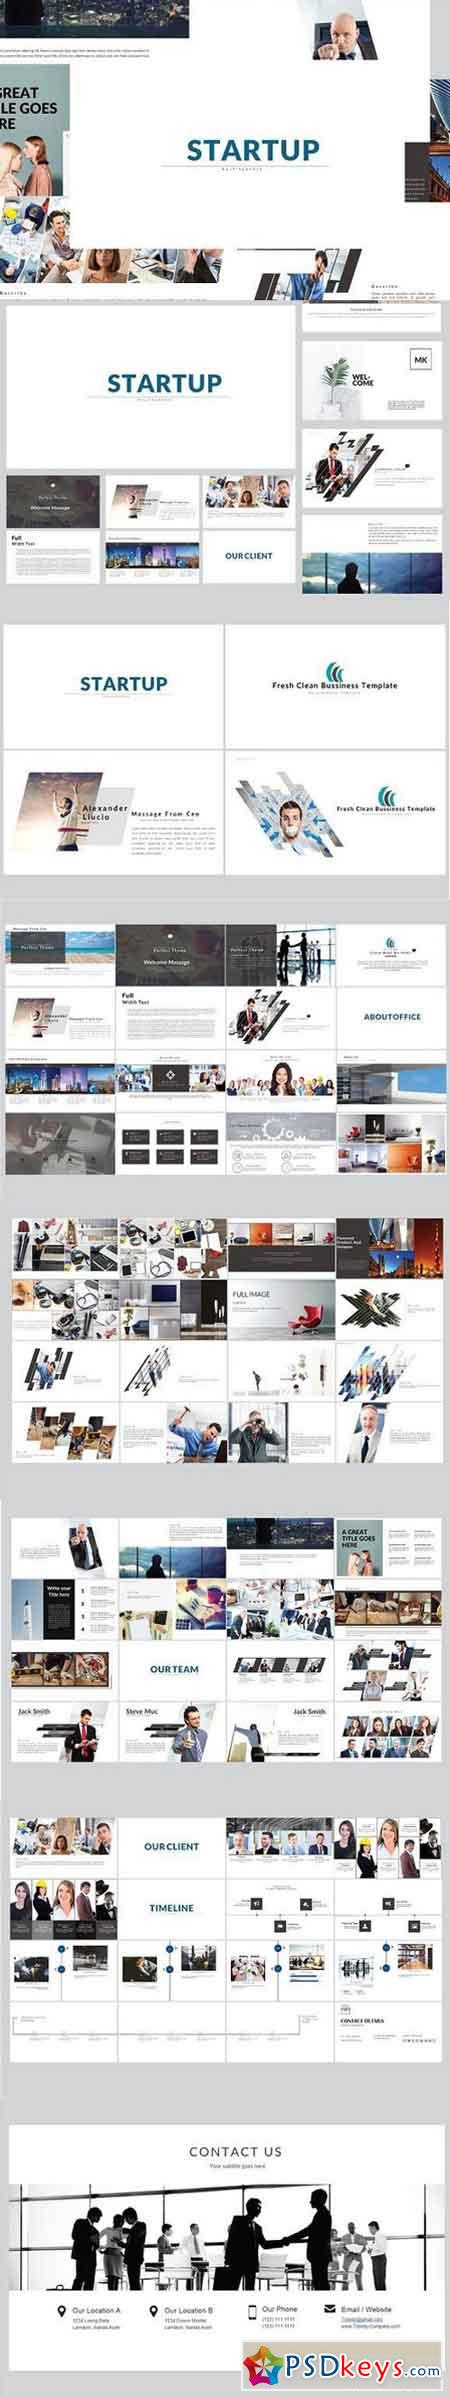 Startup Business Keynote Template 1558820